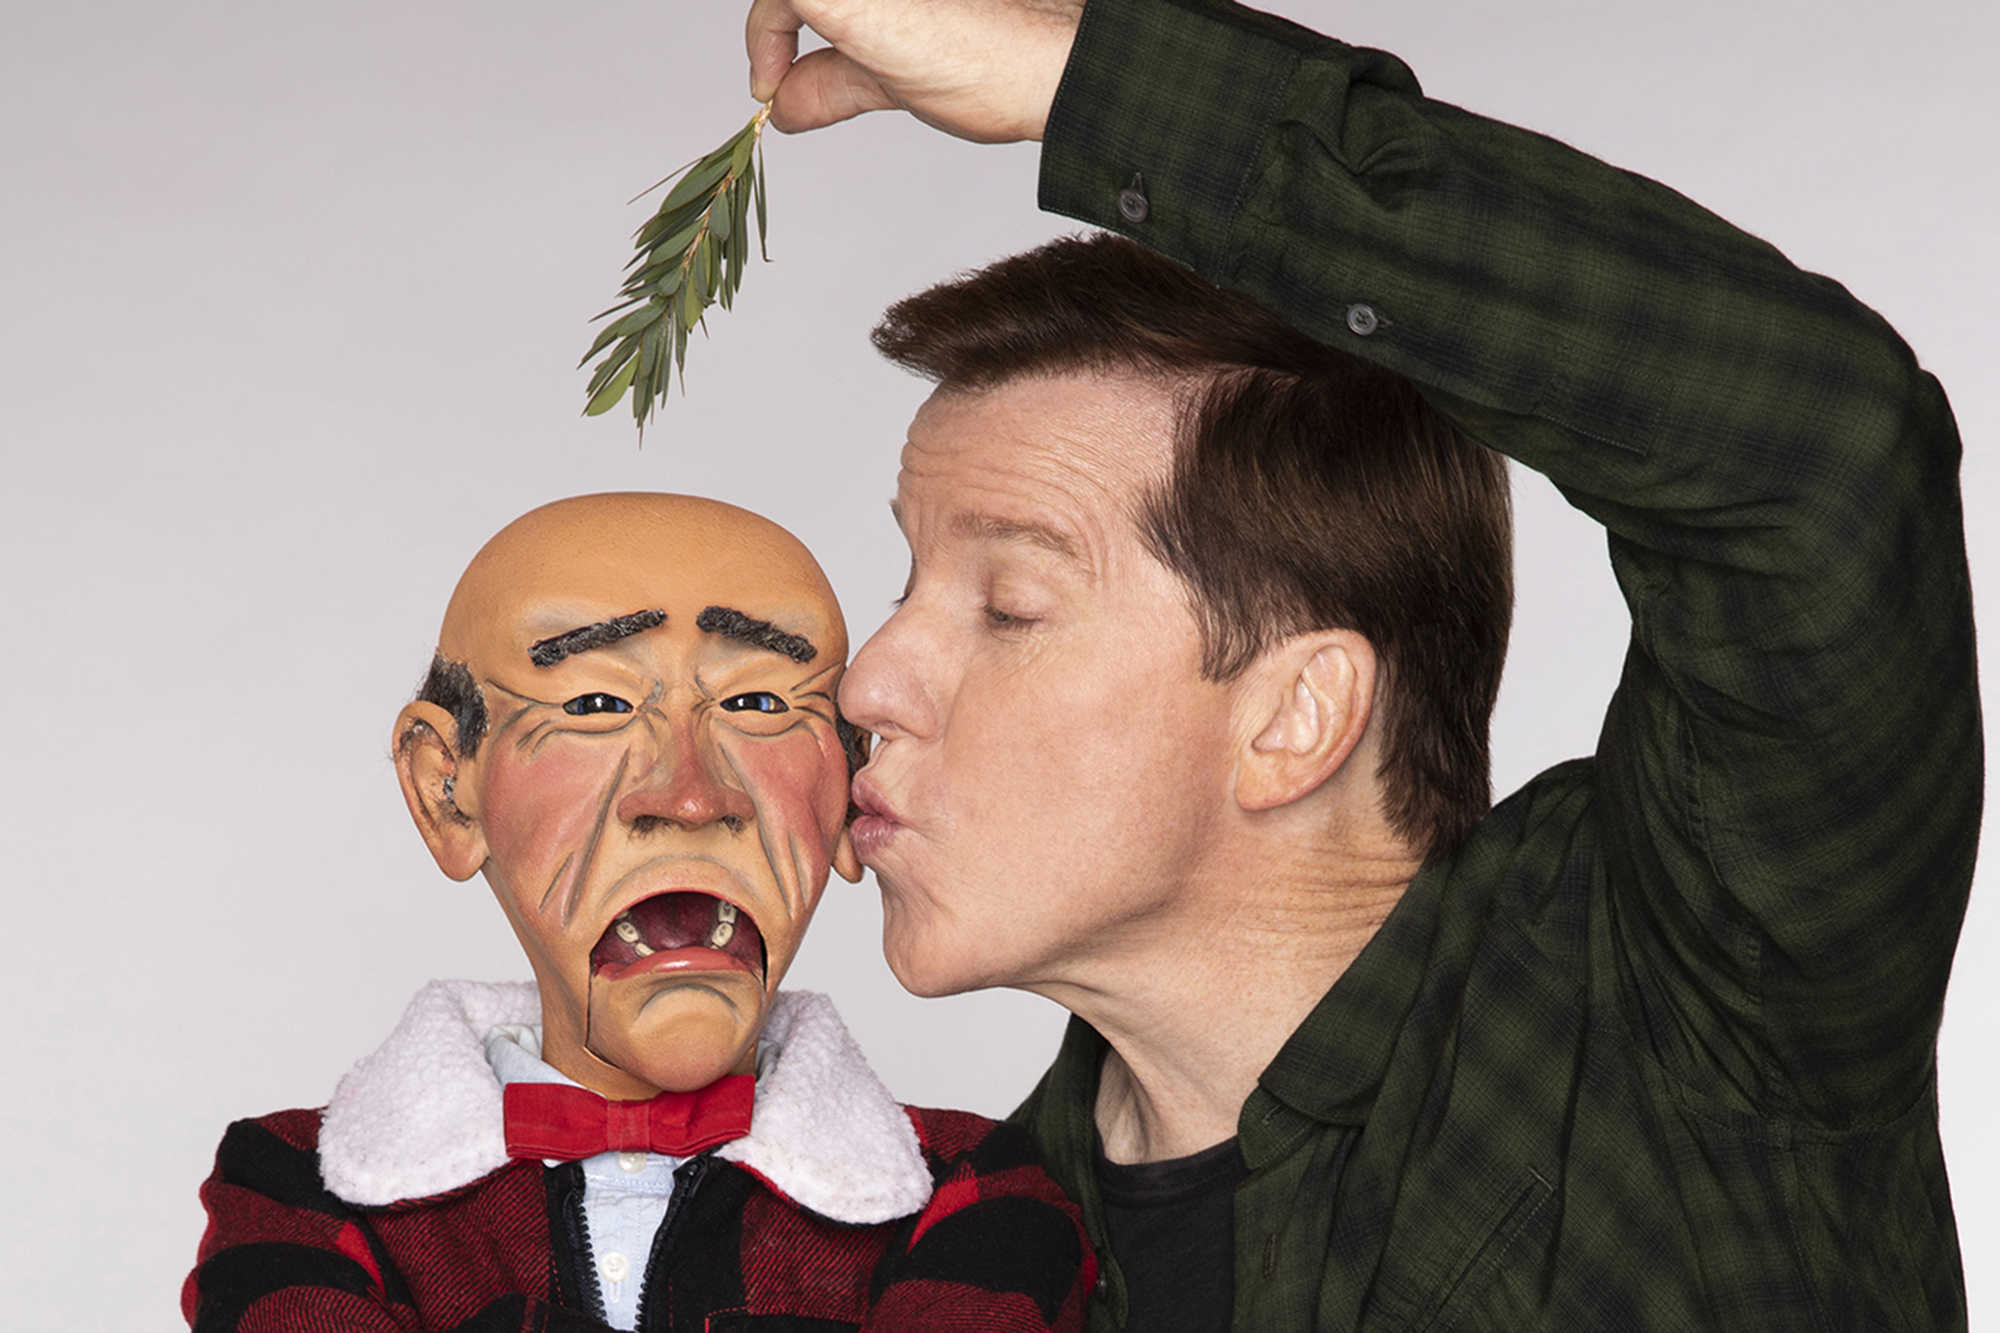 How Jeff Dunham pulled off last-minute Comedy Central special